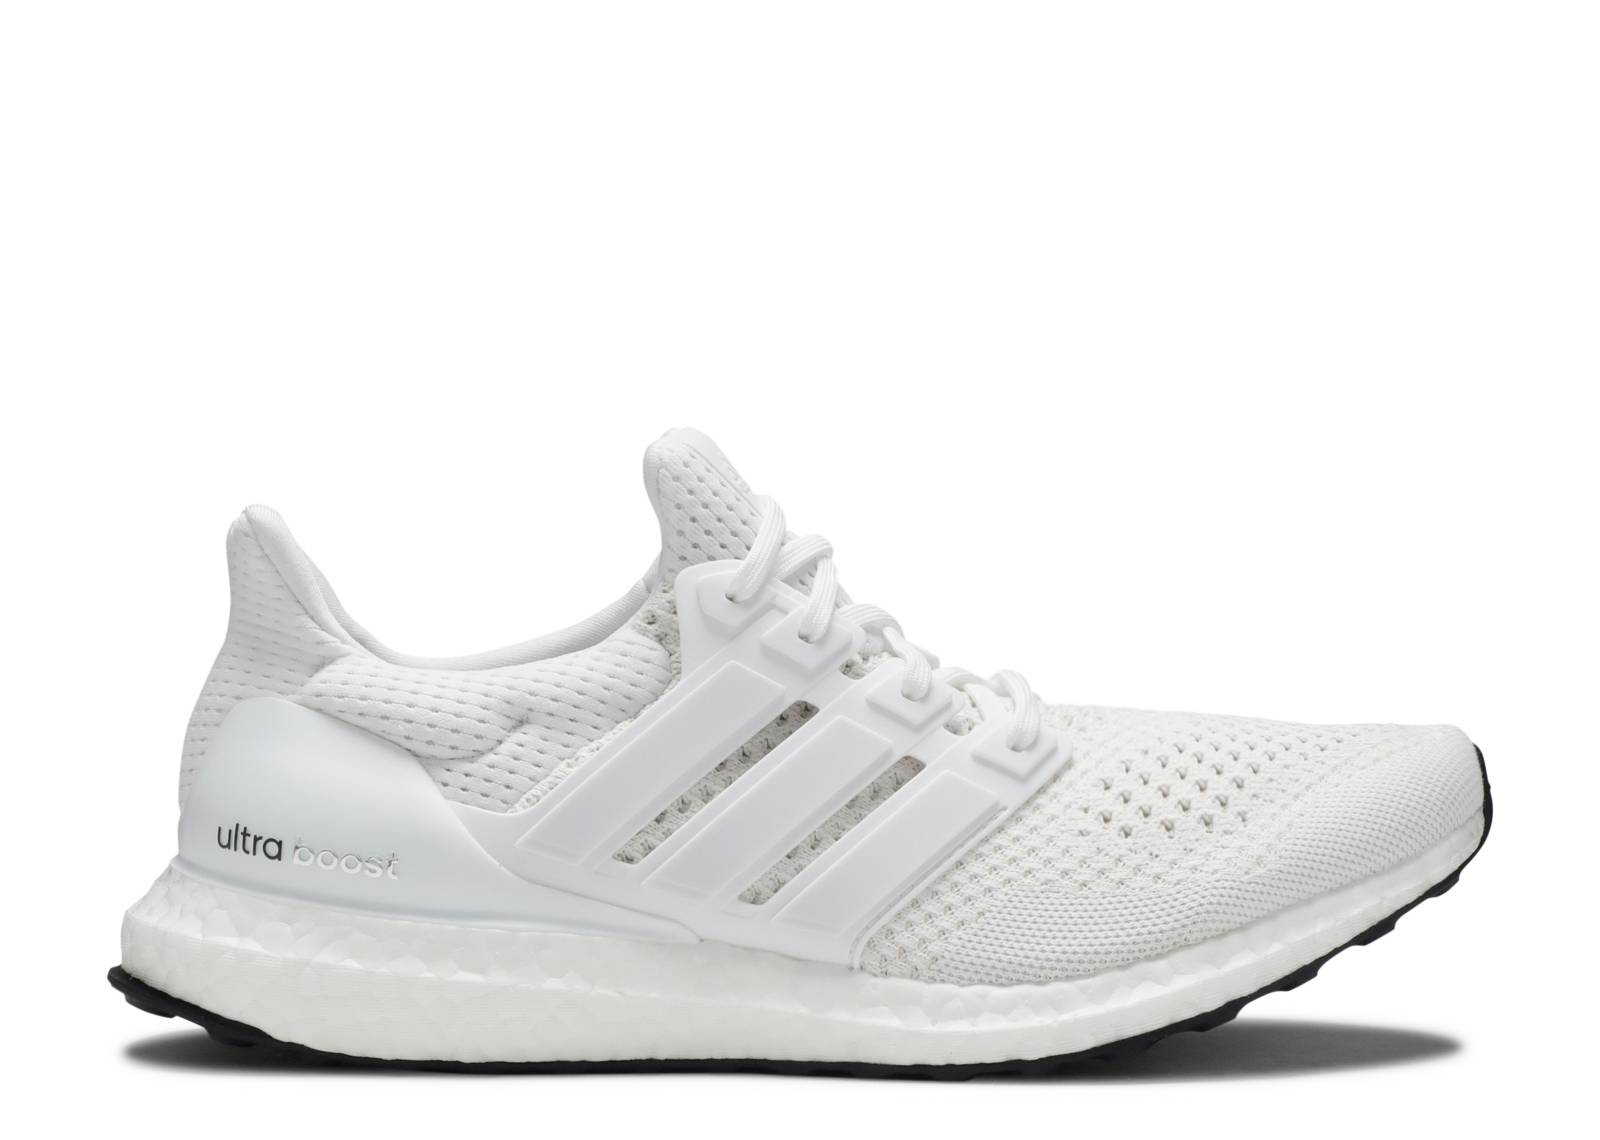 quality design 29e4f 6e82b ultra boost m